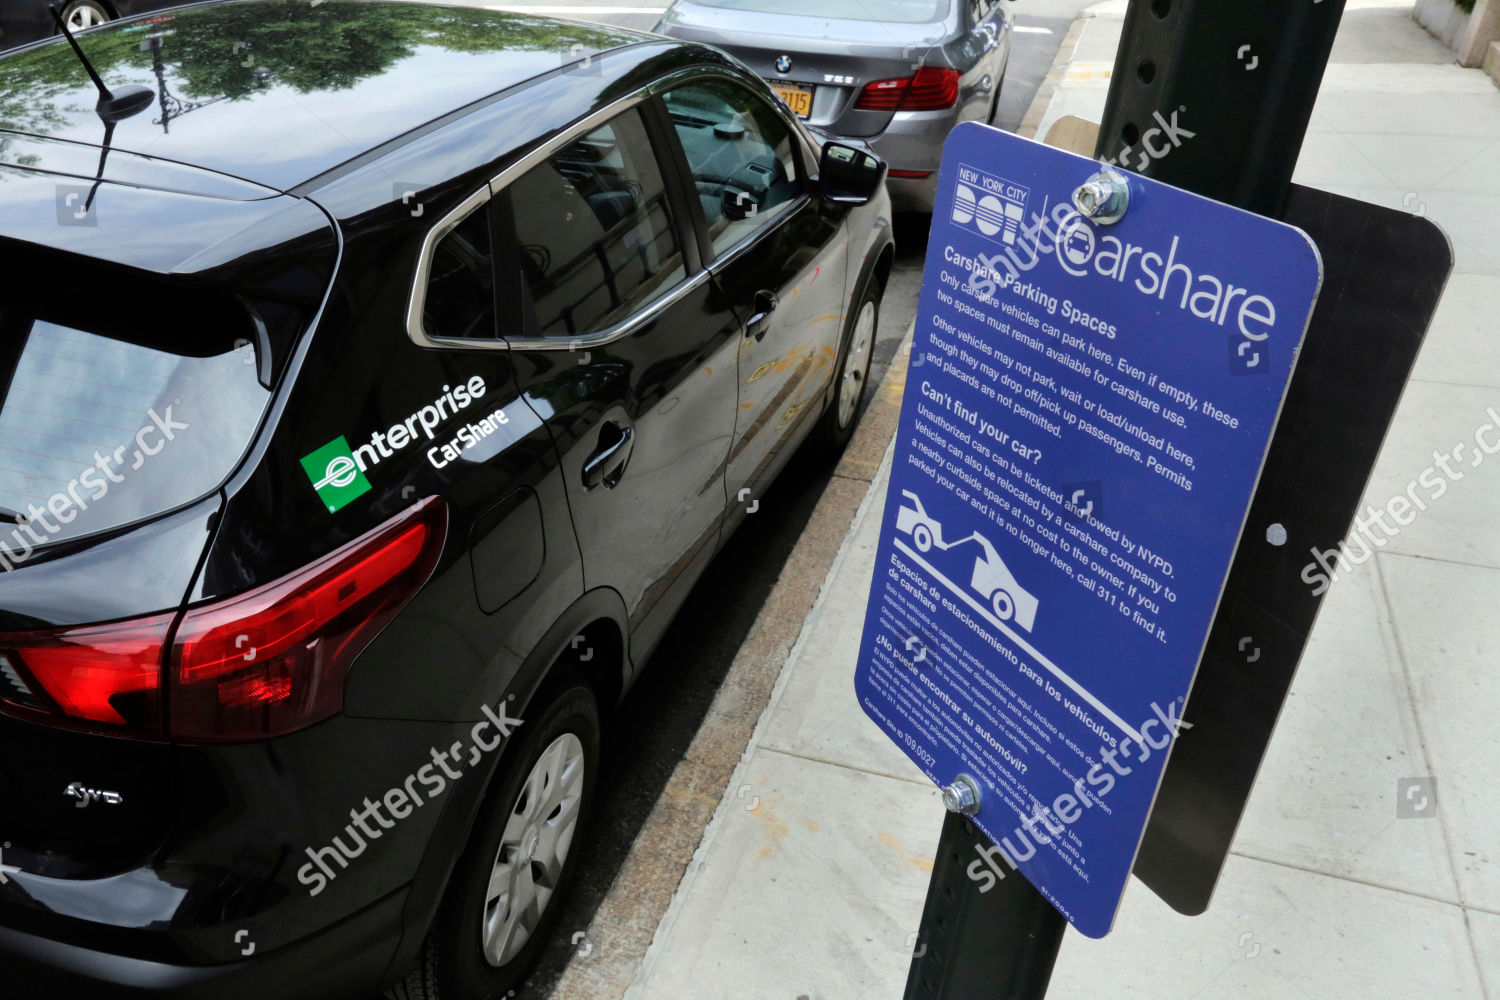 Enterprise Car Share Number >> Enterprise Carshare Vehicle Occupies Parking Space One